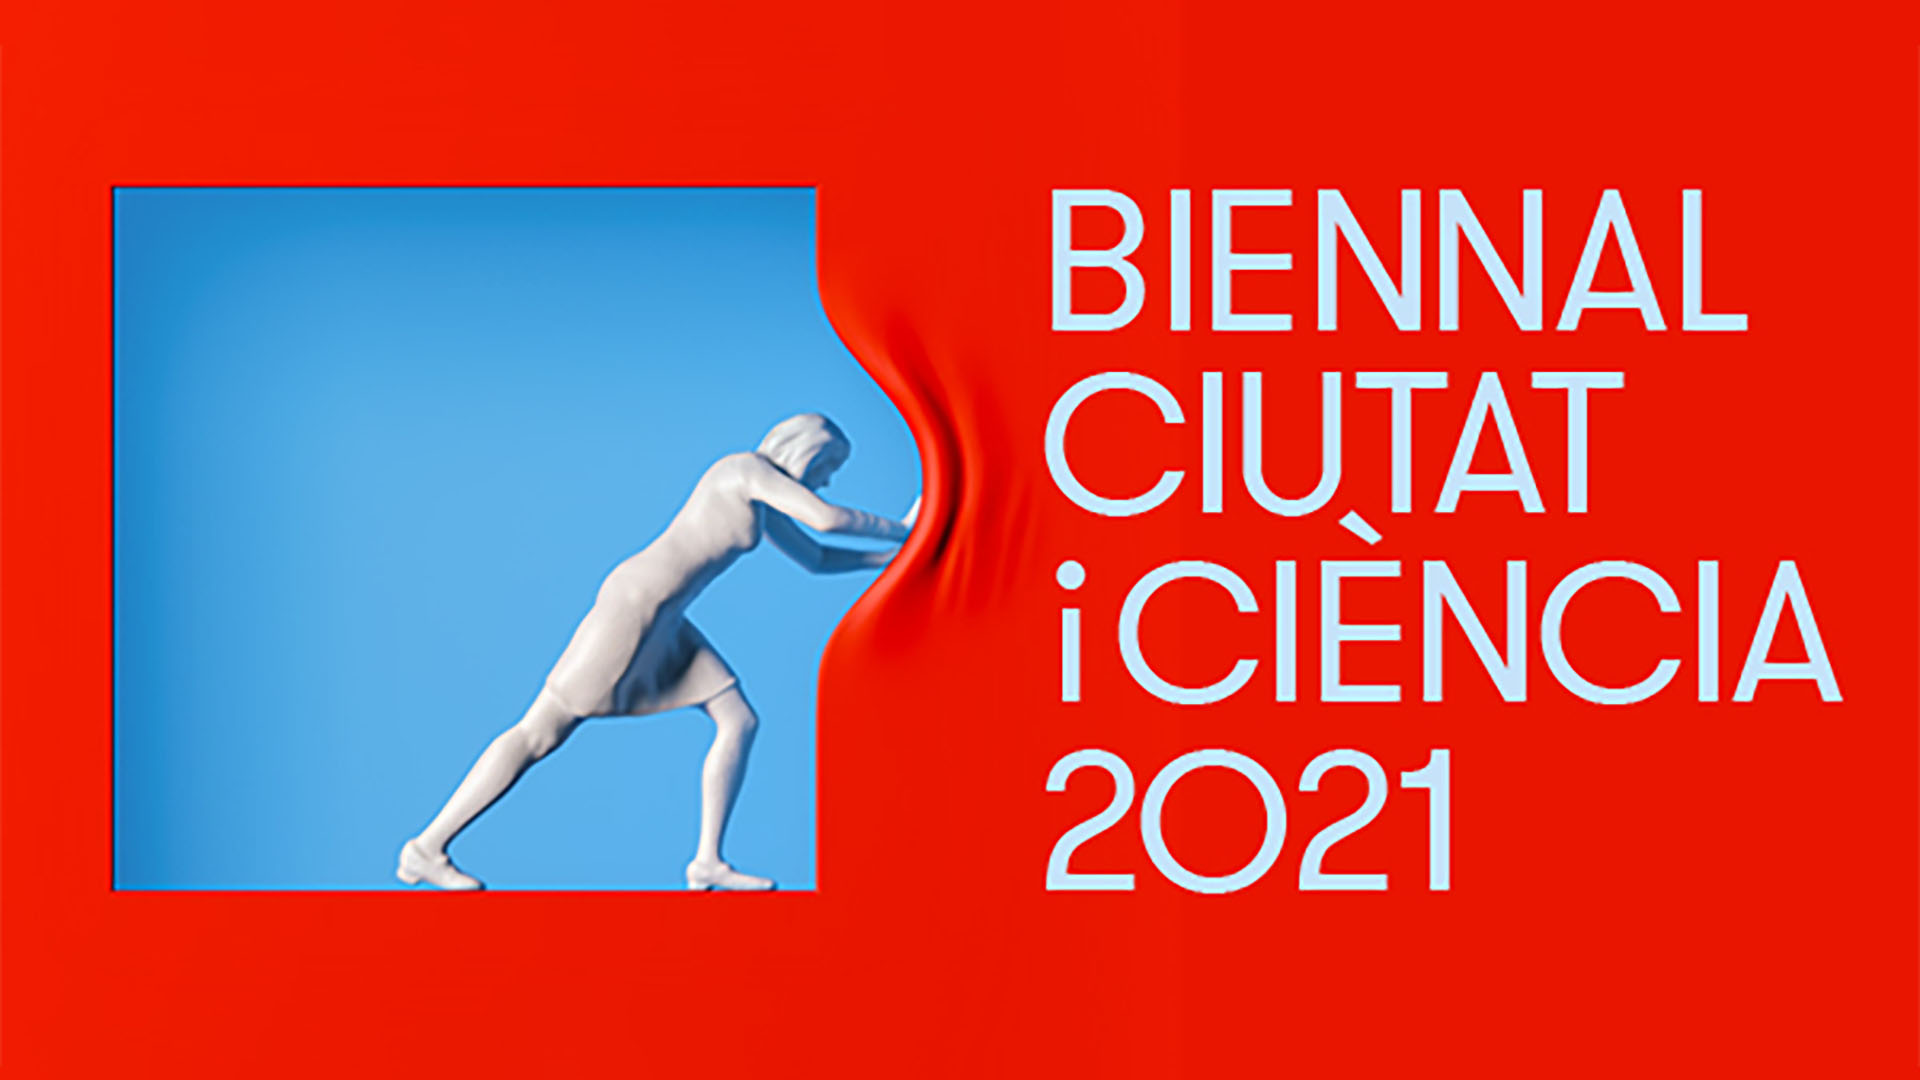 This year, the PRBB will host the biennial and the science festival